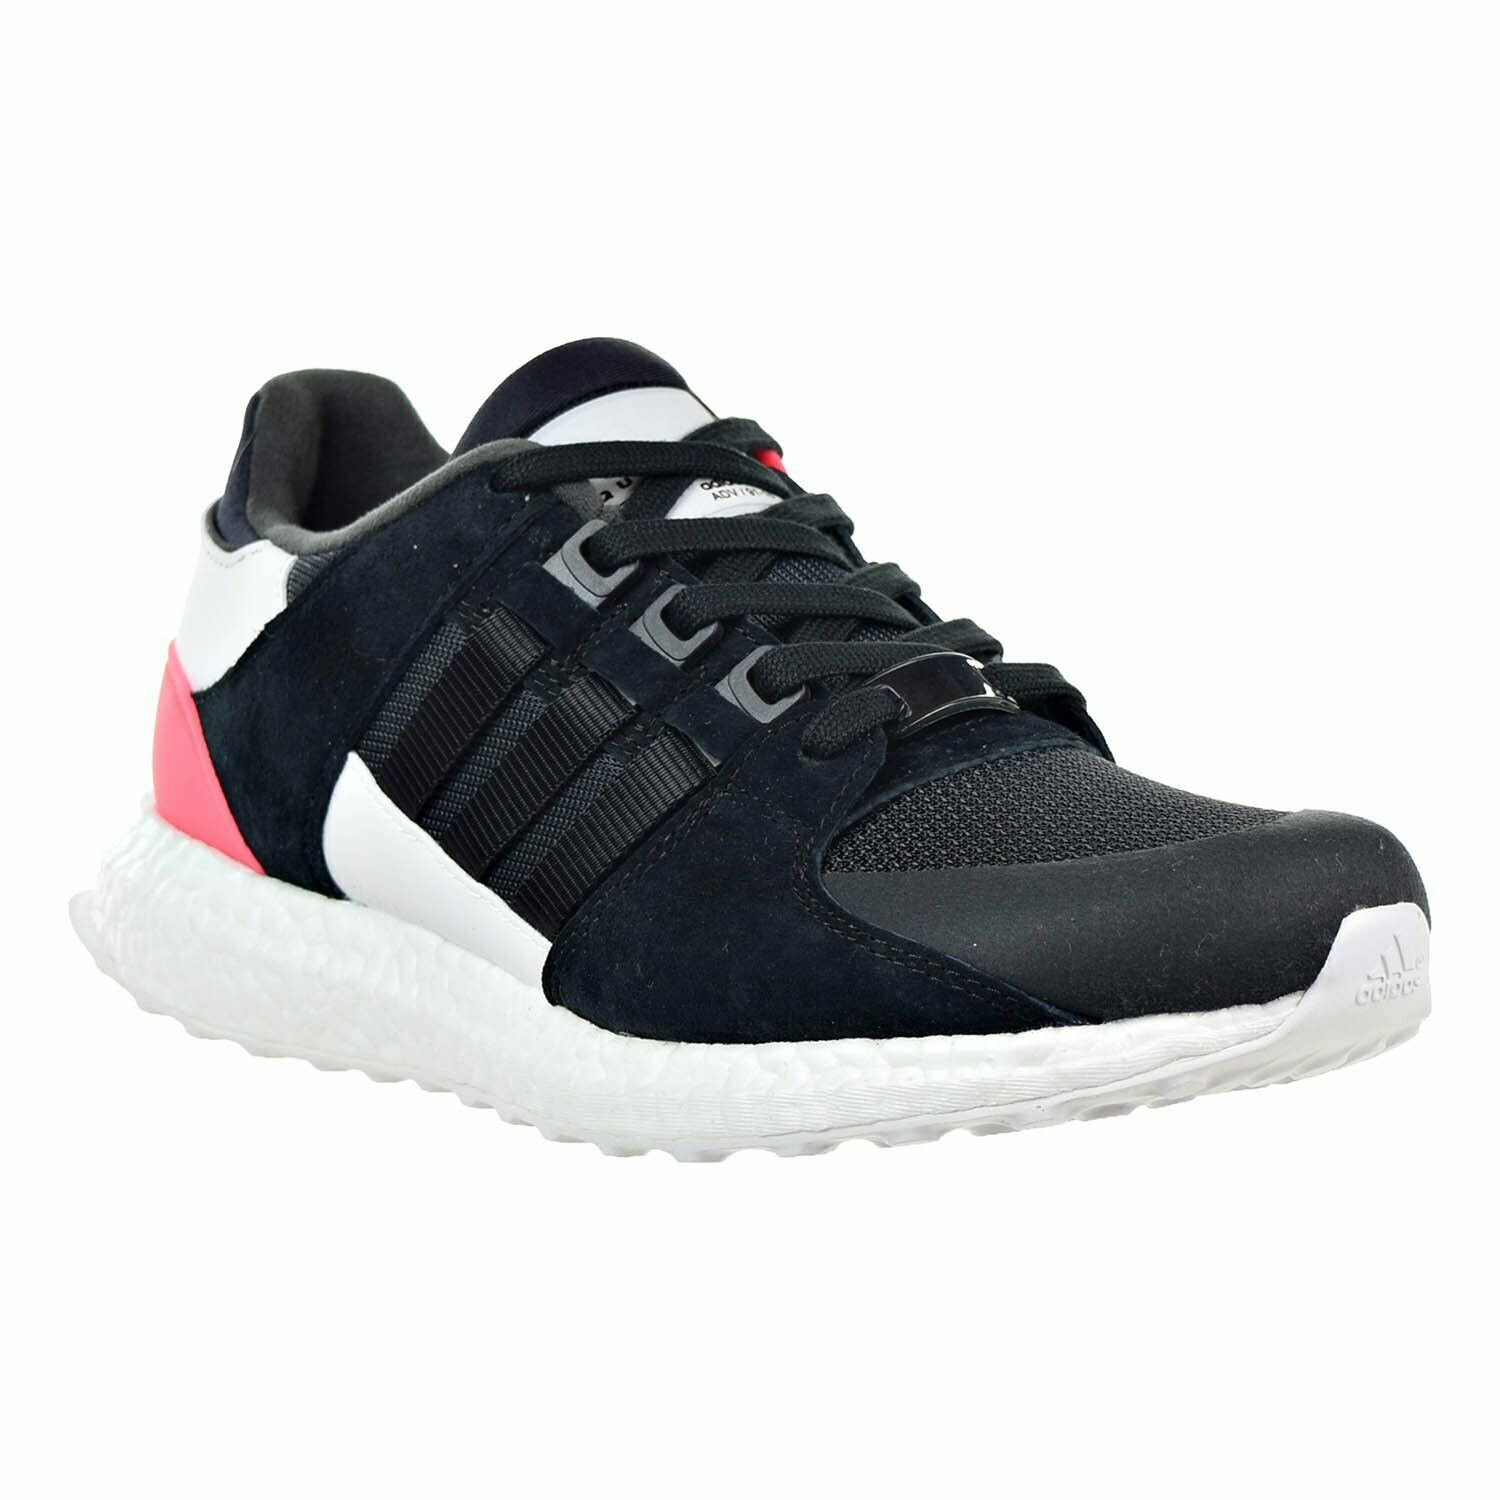 ADIDAS MENS EQUIPMENT SUPPORT ULTRA SNEAKERS BB1237 CORE BLK TURBO RED 7.5